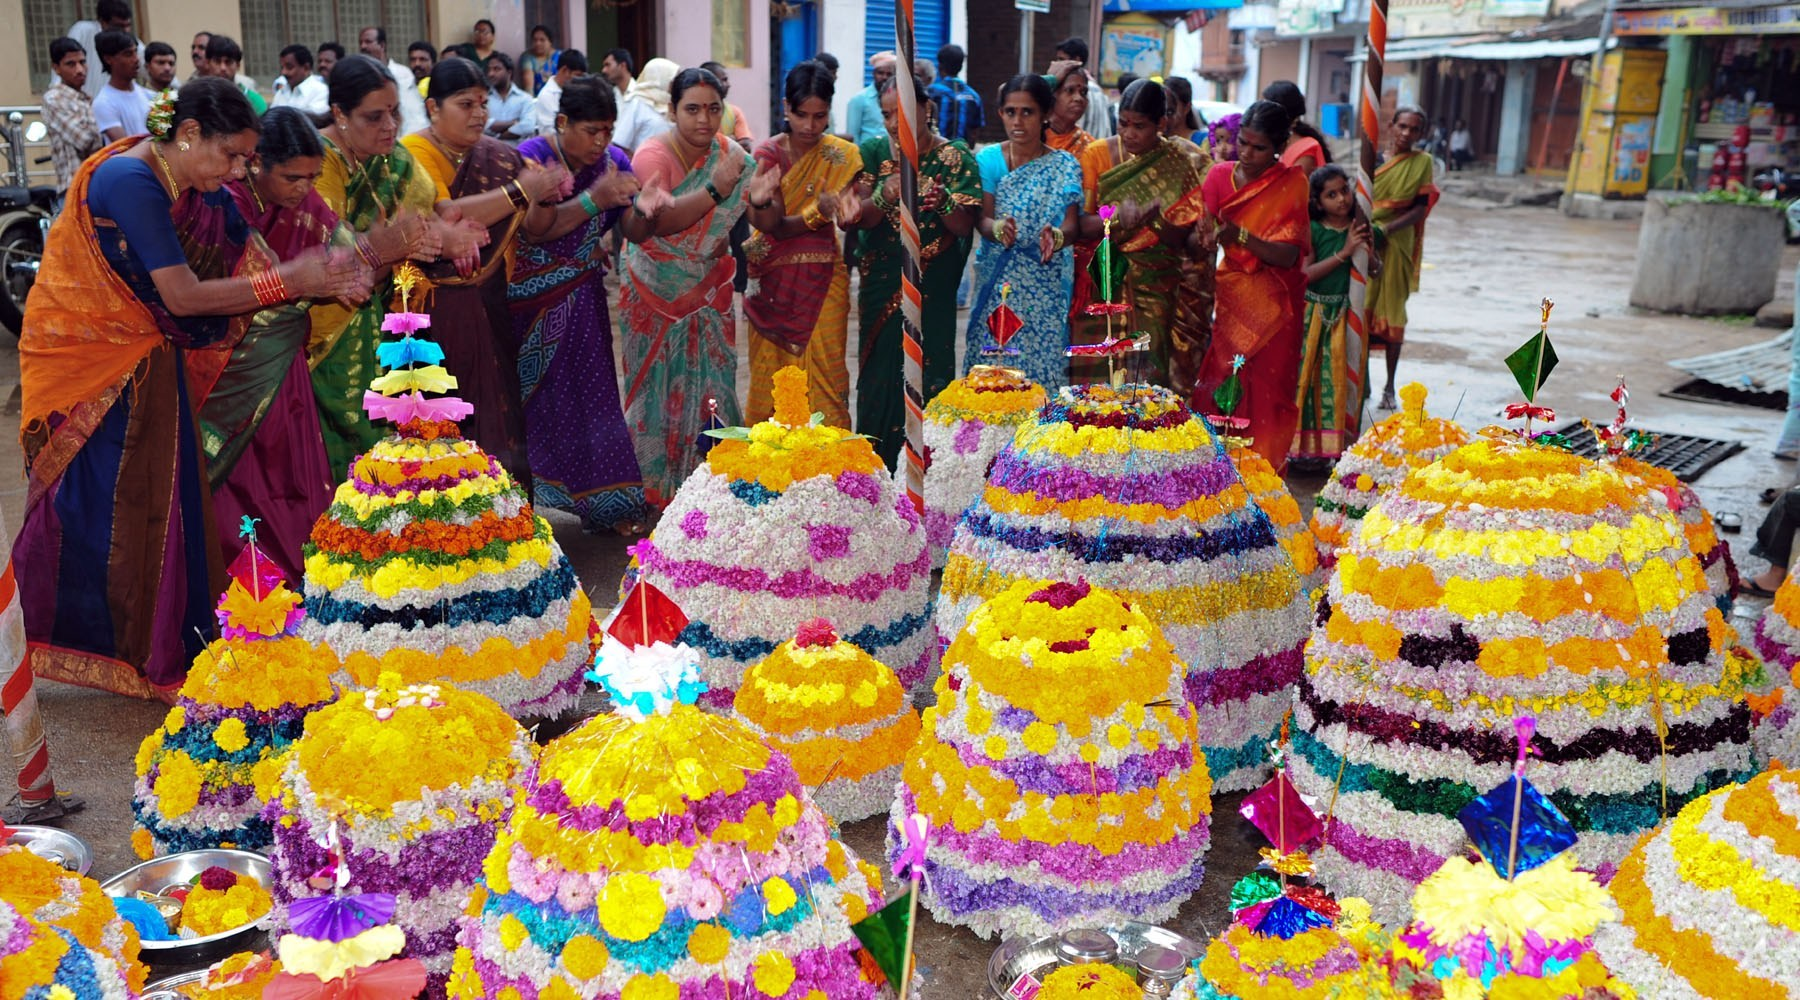 015 Essay On Bathukamma In Telugu Telangana Flower Festival 4resize18002c1000 Dreaded Short Language Full